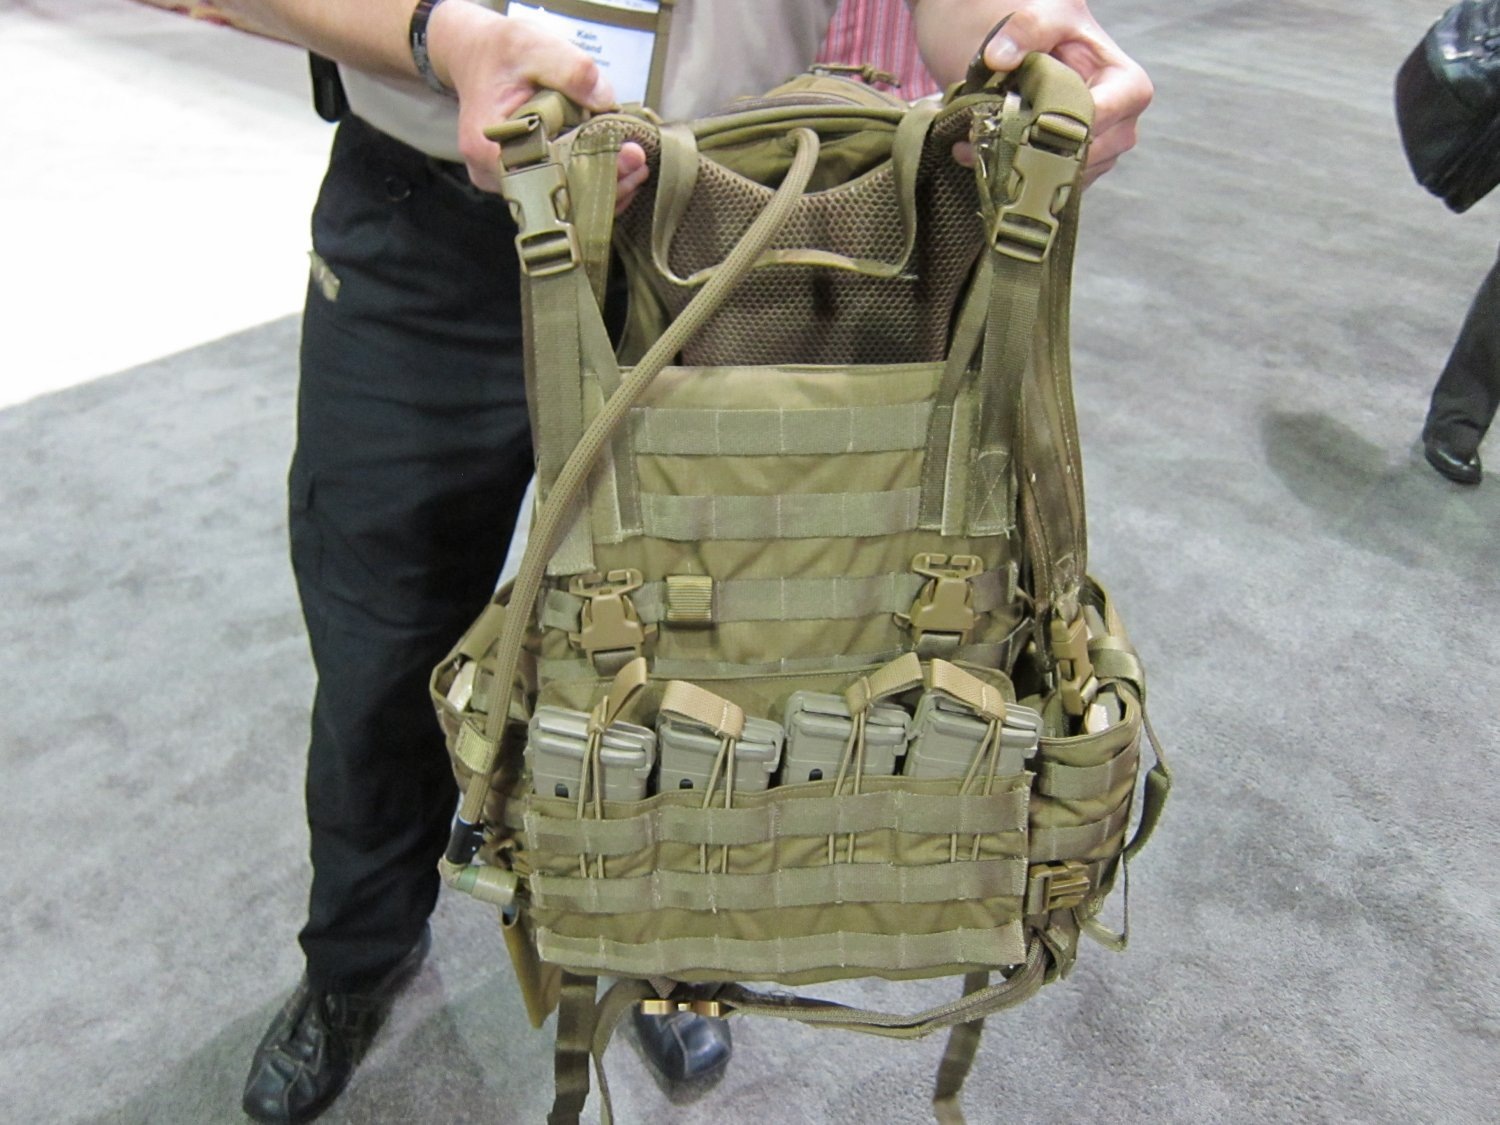 Archangel Armor Internal Frame Load Bearing System IFLBS Version 5 Tactical Armor Plate Carrier System SOFIC 2011 9 <!  :en  >Archangel Armor Internal Frame Load Bearing System (IFLBS) Version 5 Tactical Armor Plate Carrier/Tactical Vest System: Lighten your load when youre in combat mode!<!  :  >